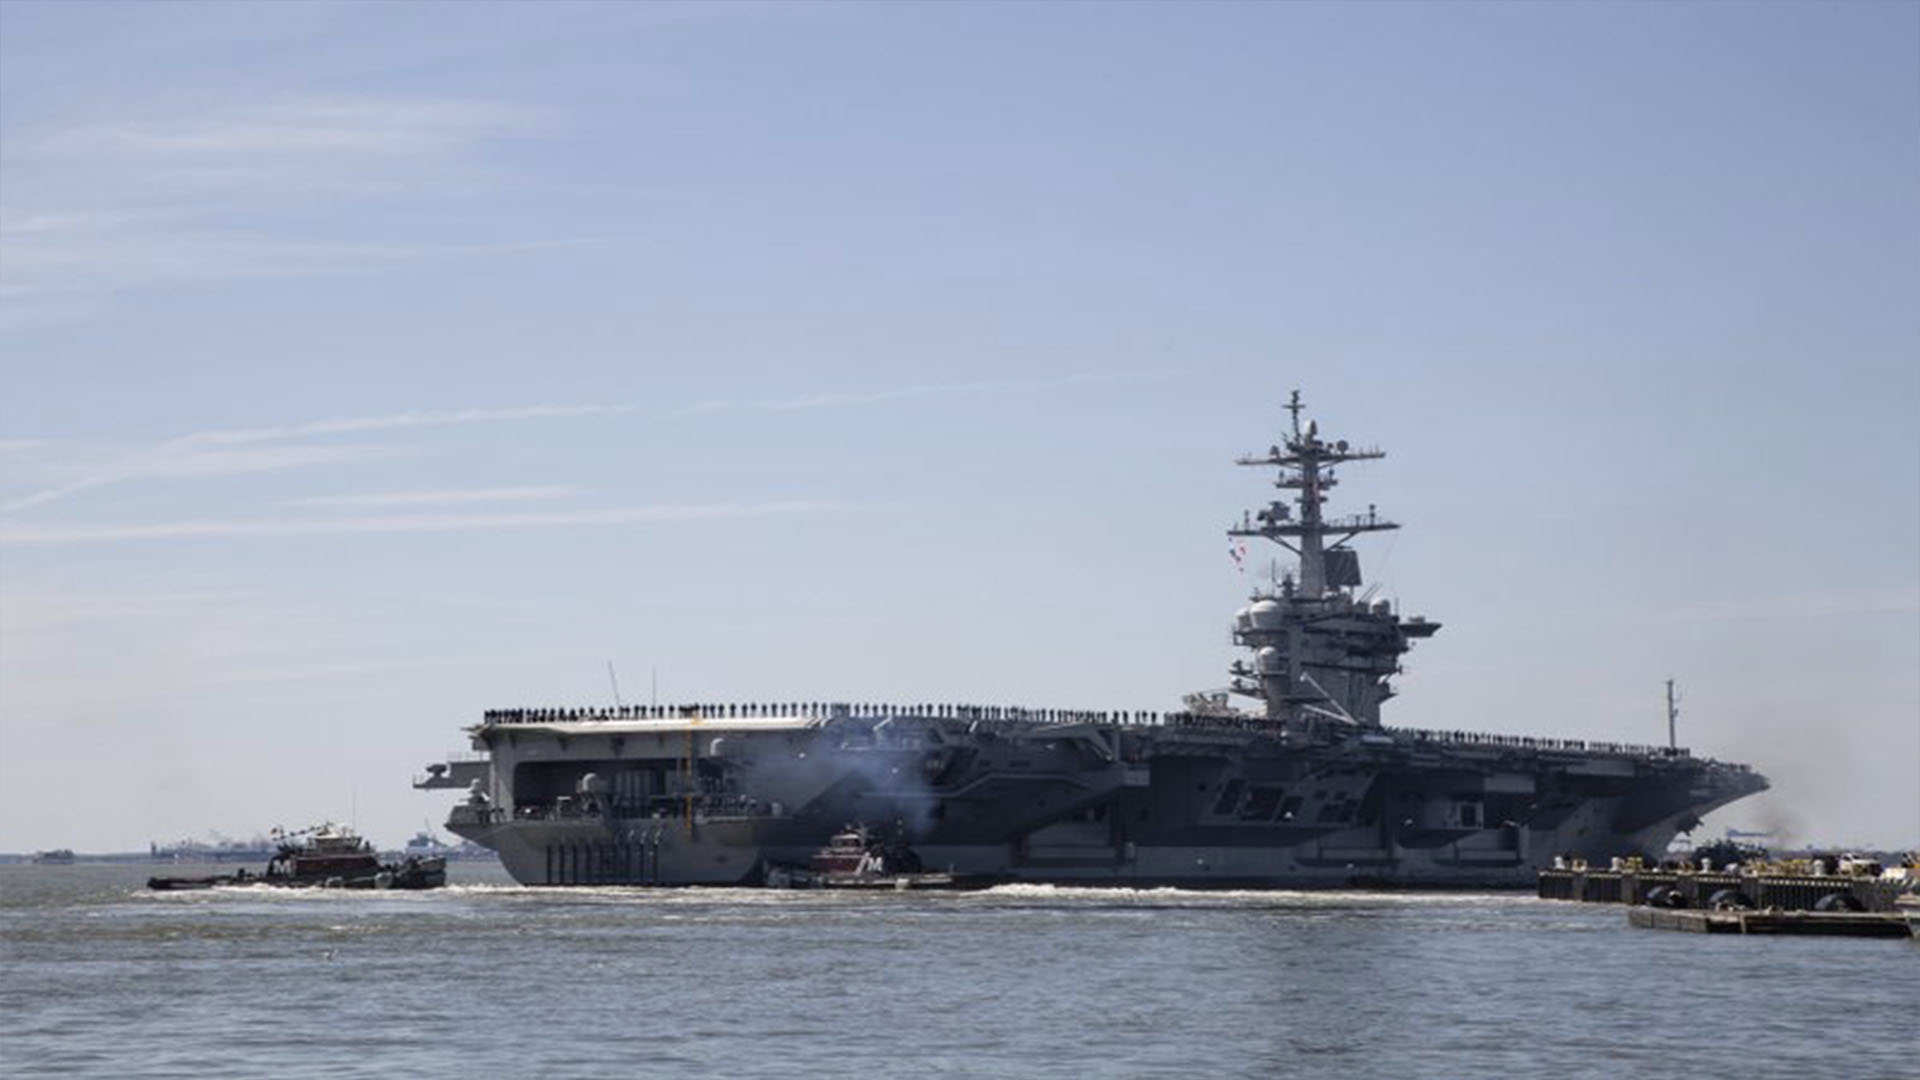 US dispatched aircraft carrier to send message to Iran